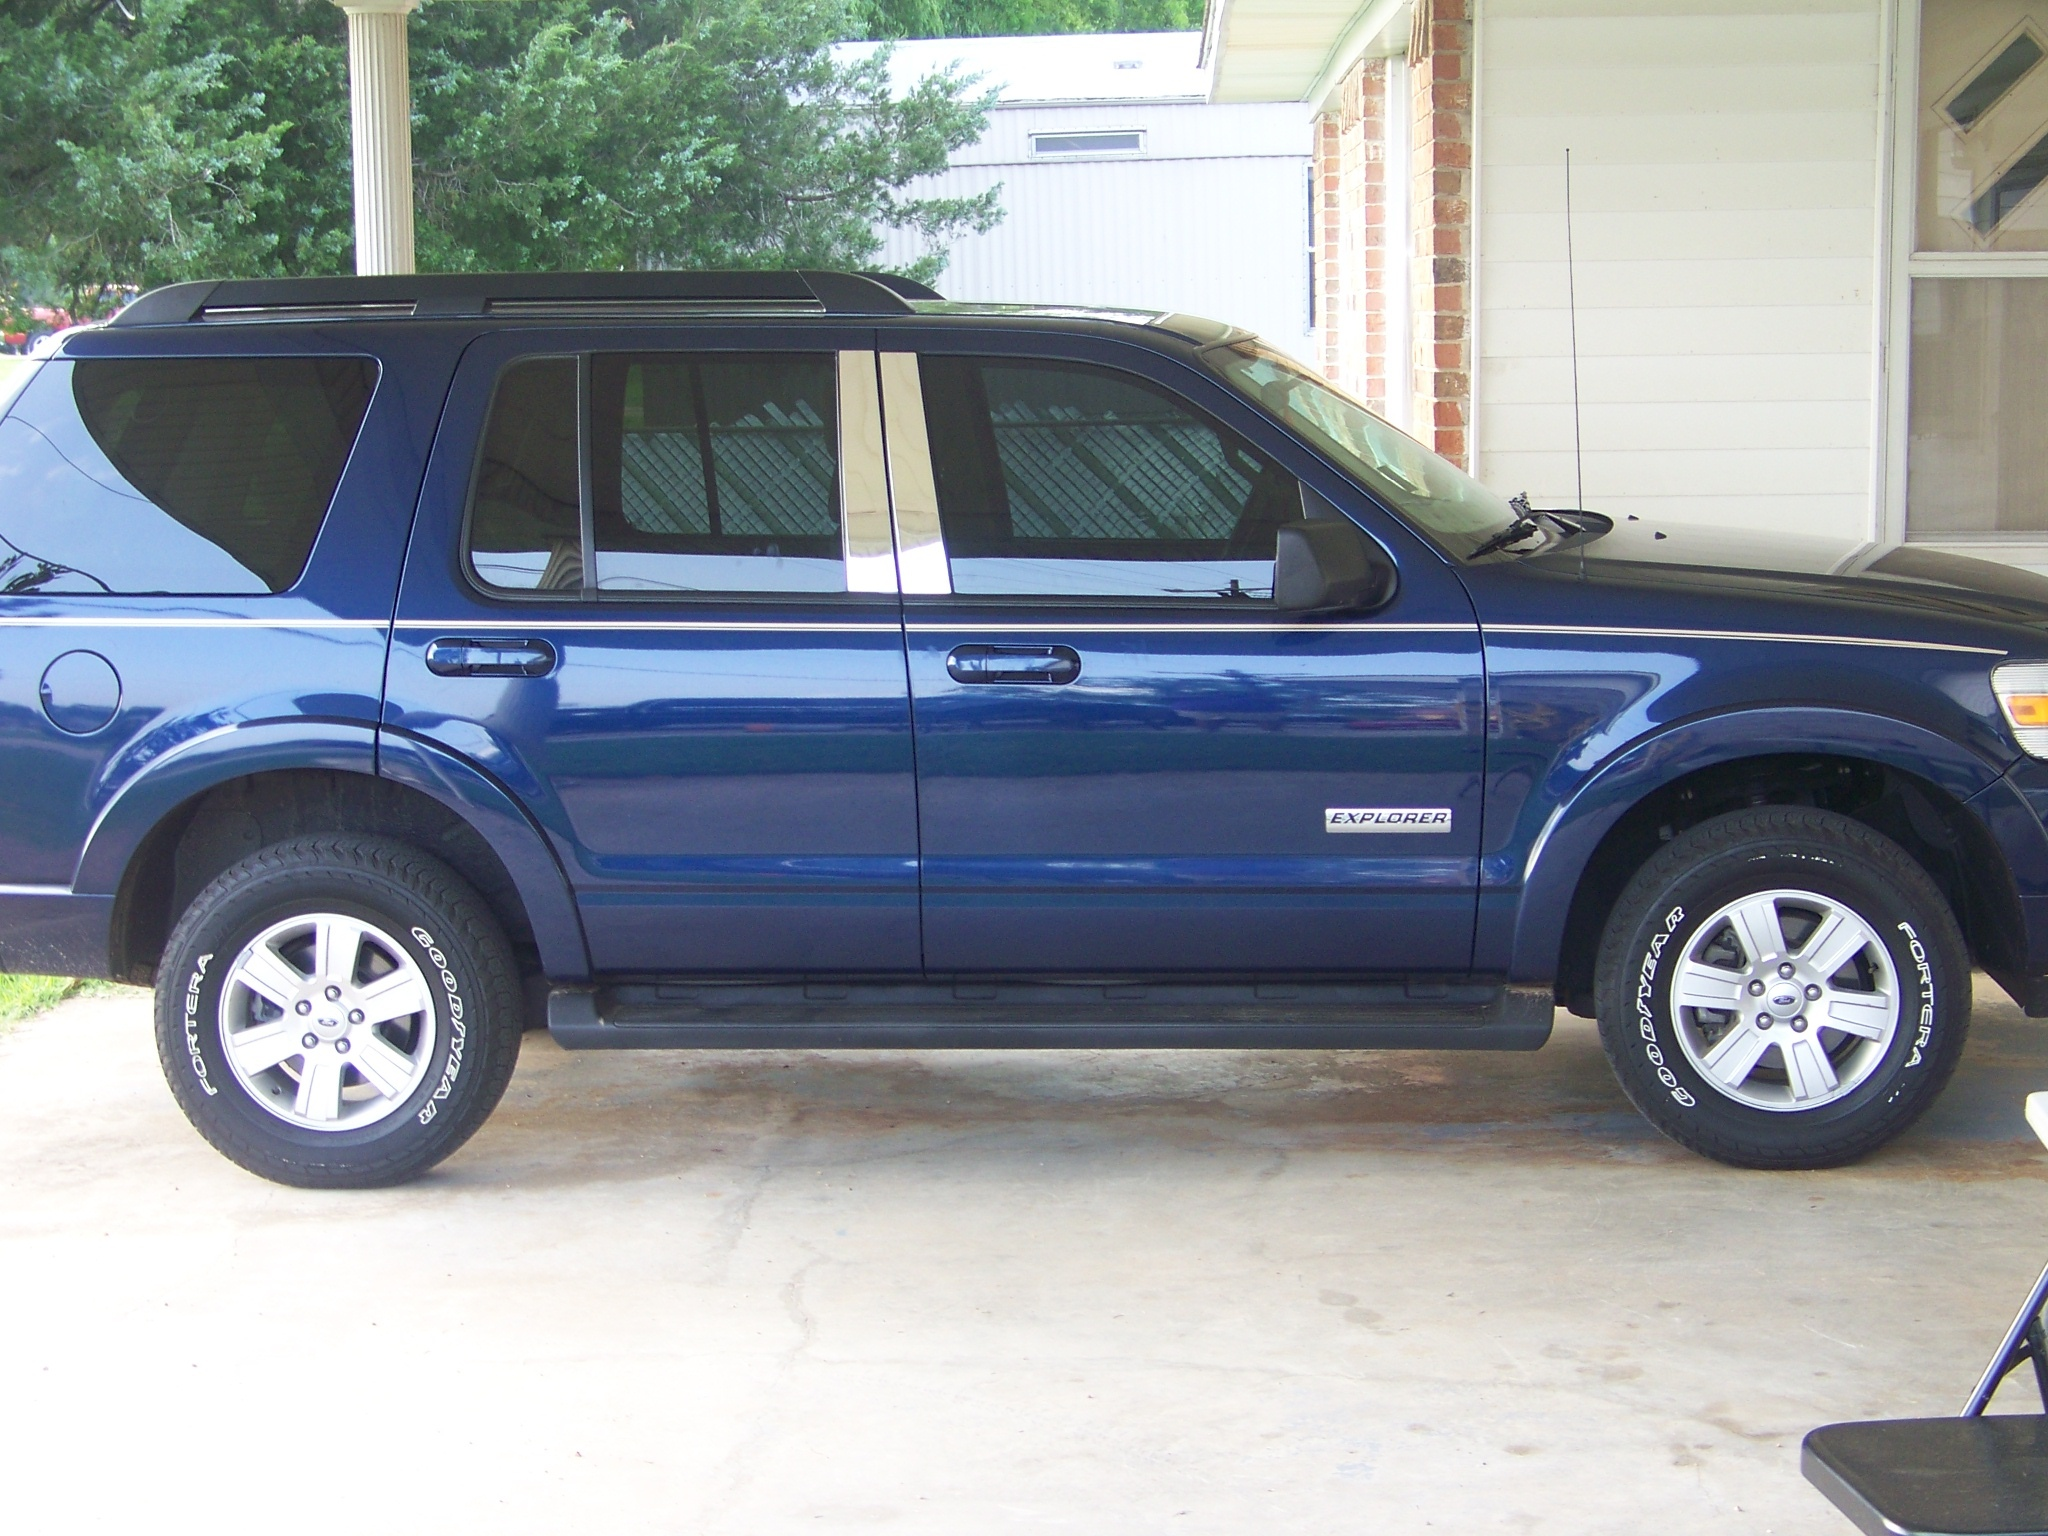 simplyQ 2008 Ford Explorer 13208243